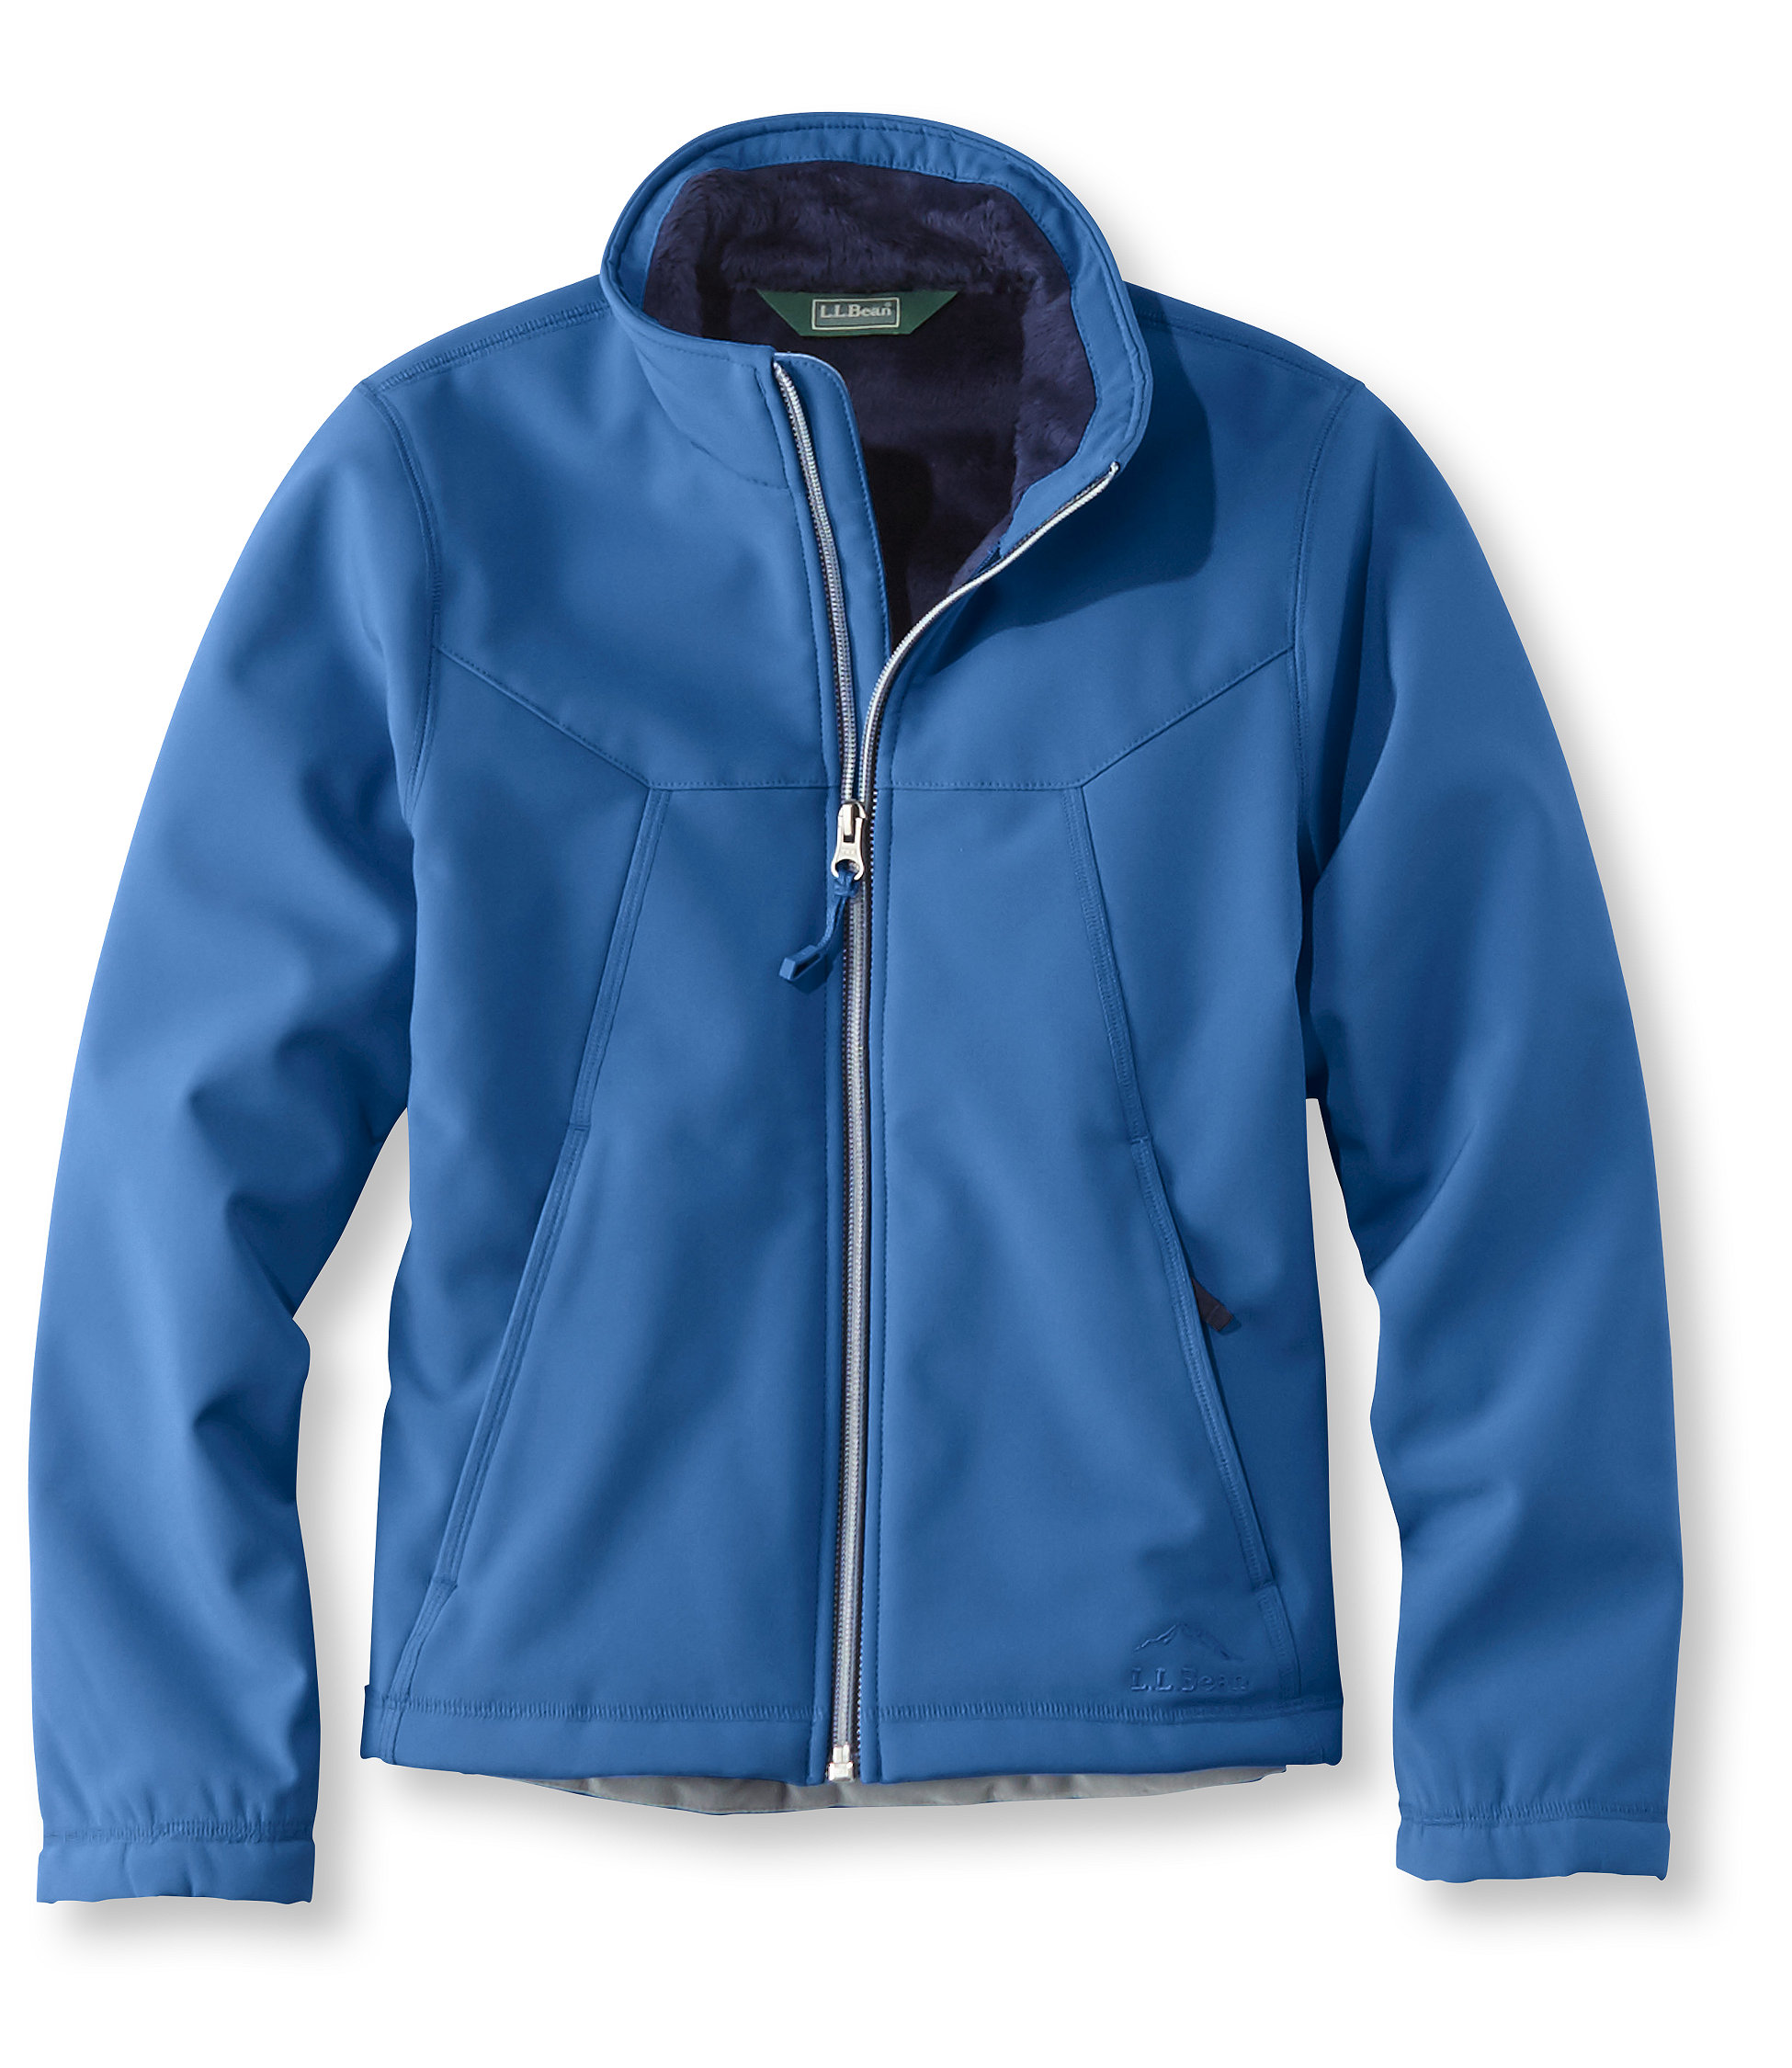 L.L.Bean Wonderfleece Soft-Shell Jacket